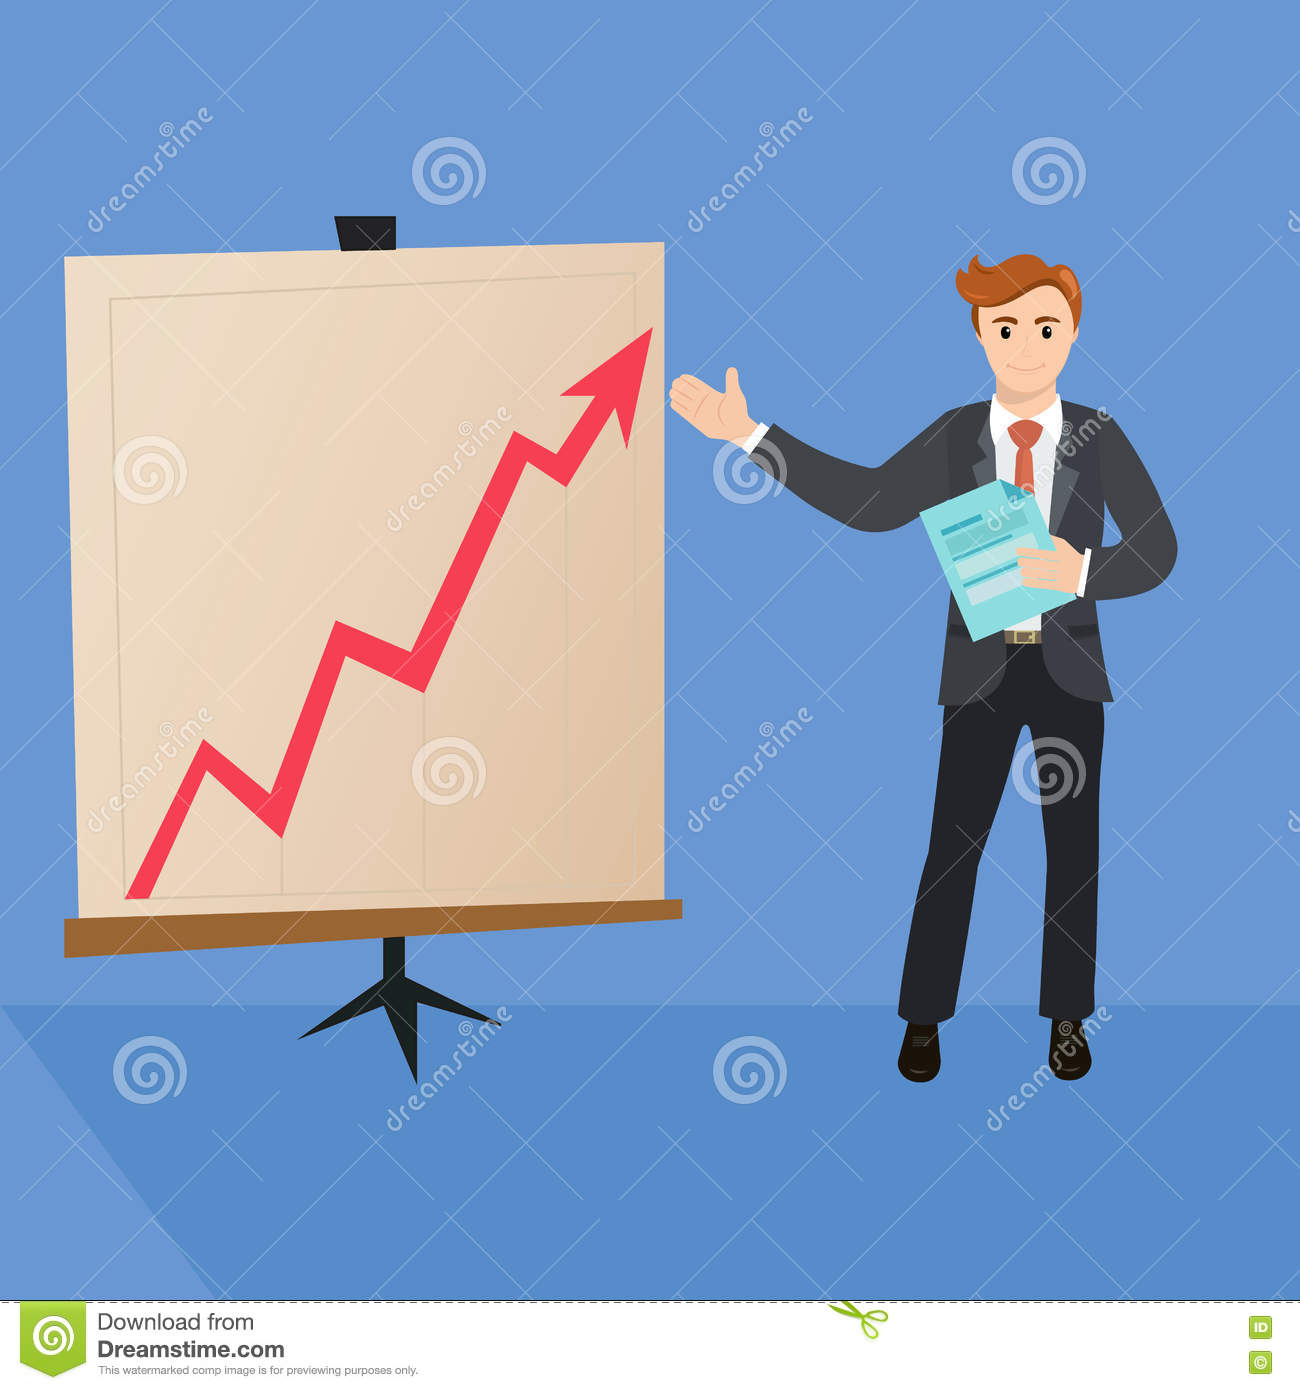 377600dd43f8 Handsome manager in formal suit is giving a presentation and showing  graphs. Cartoon character - cute businessman. Report